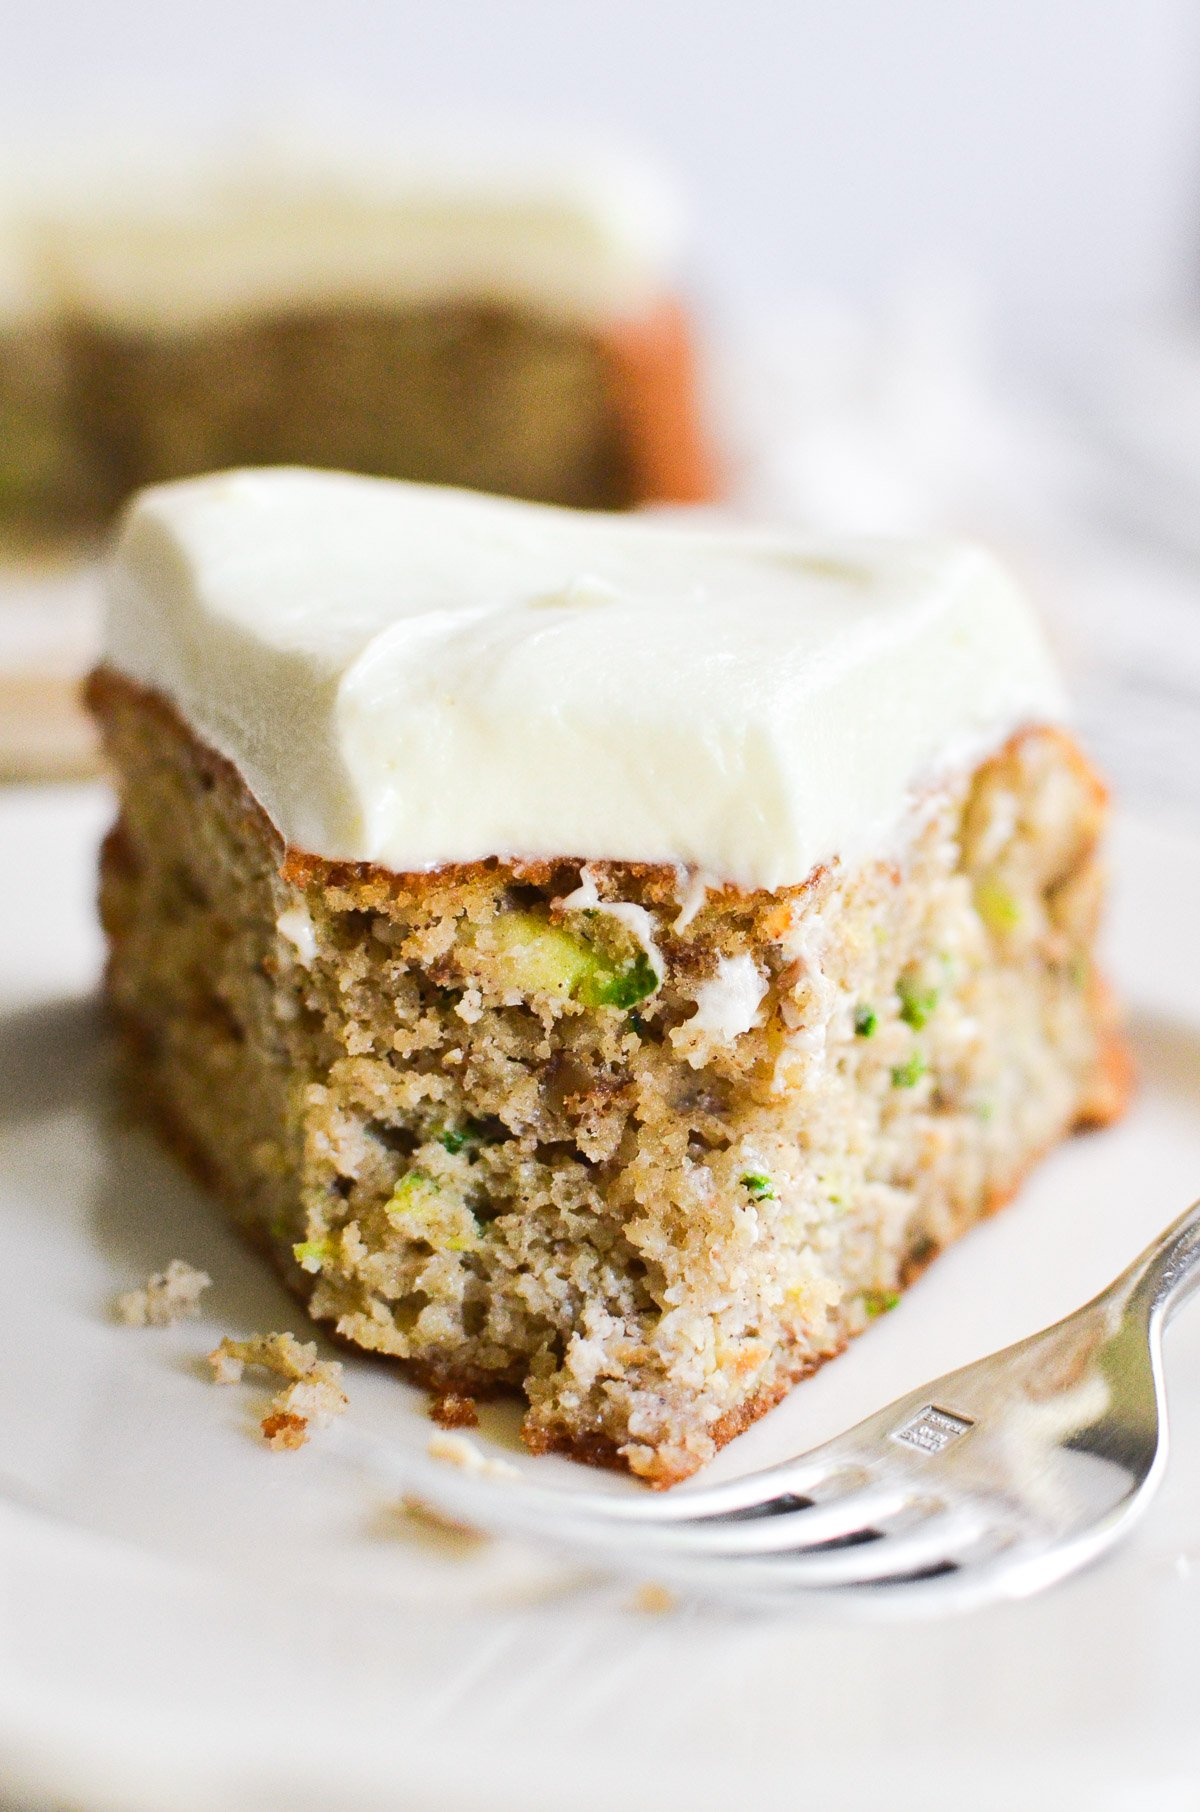 A slice of gluten free zucchini cake with a bite taken out of it and a fork on a white plate.